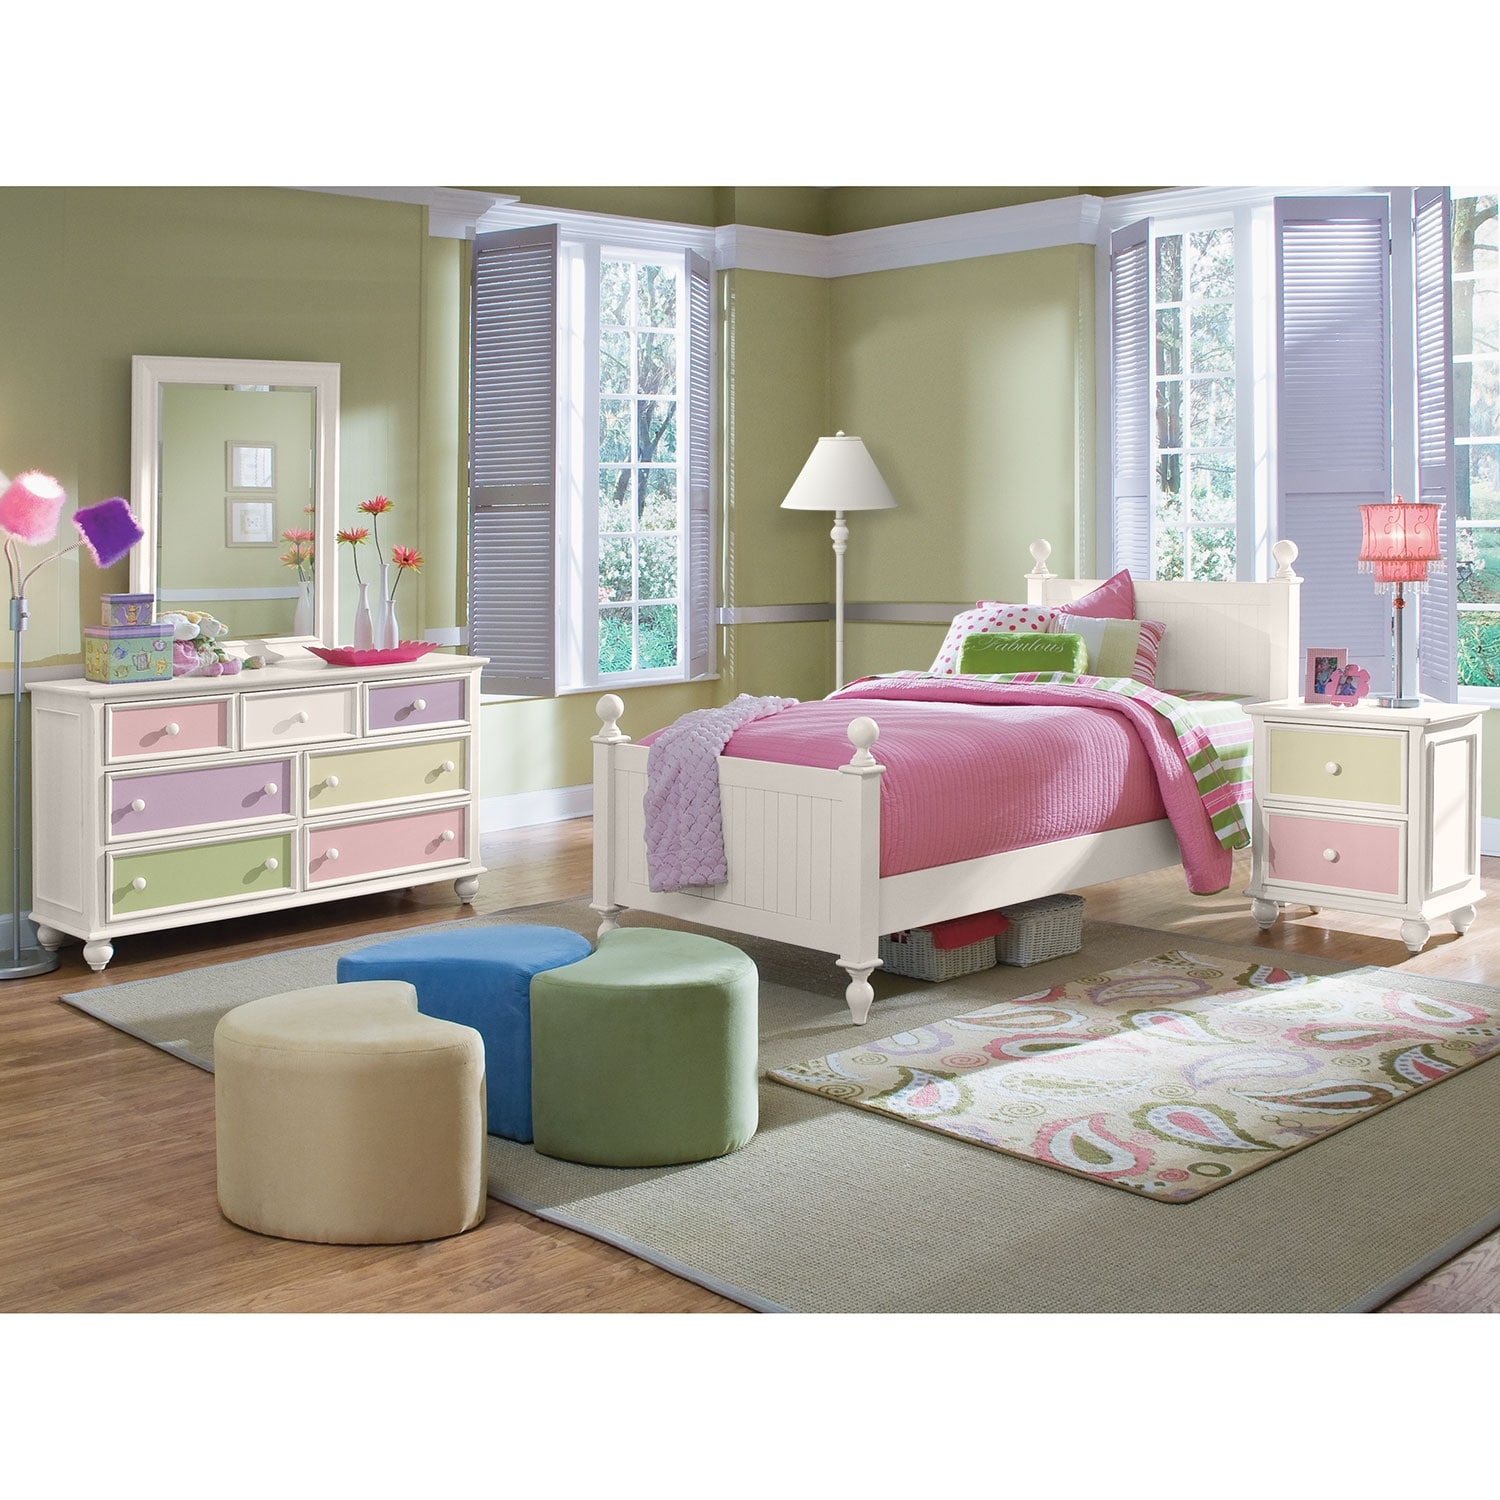 Colorworks 6-Piece Full Bedroom Set - White   American ...